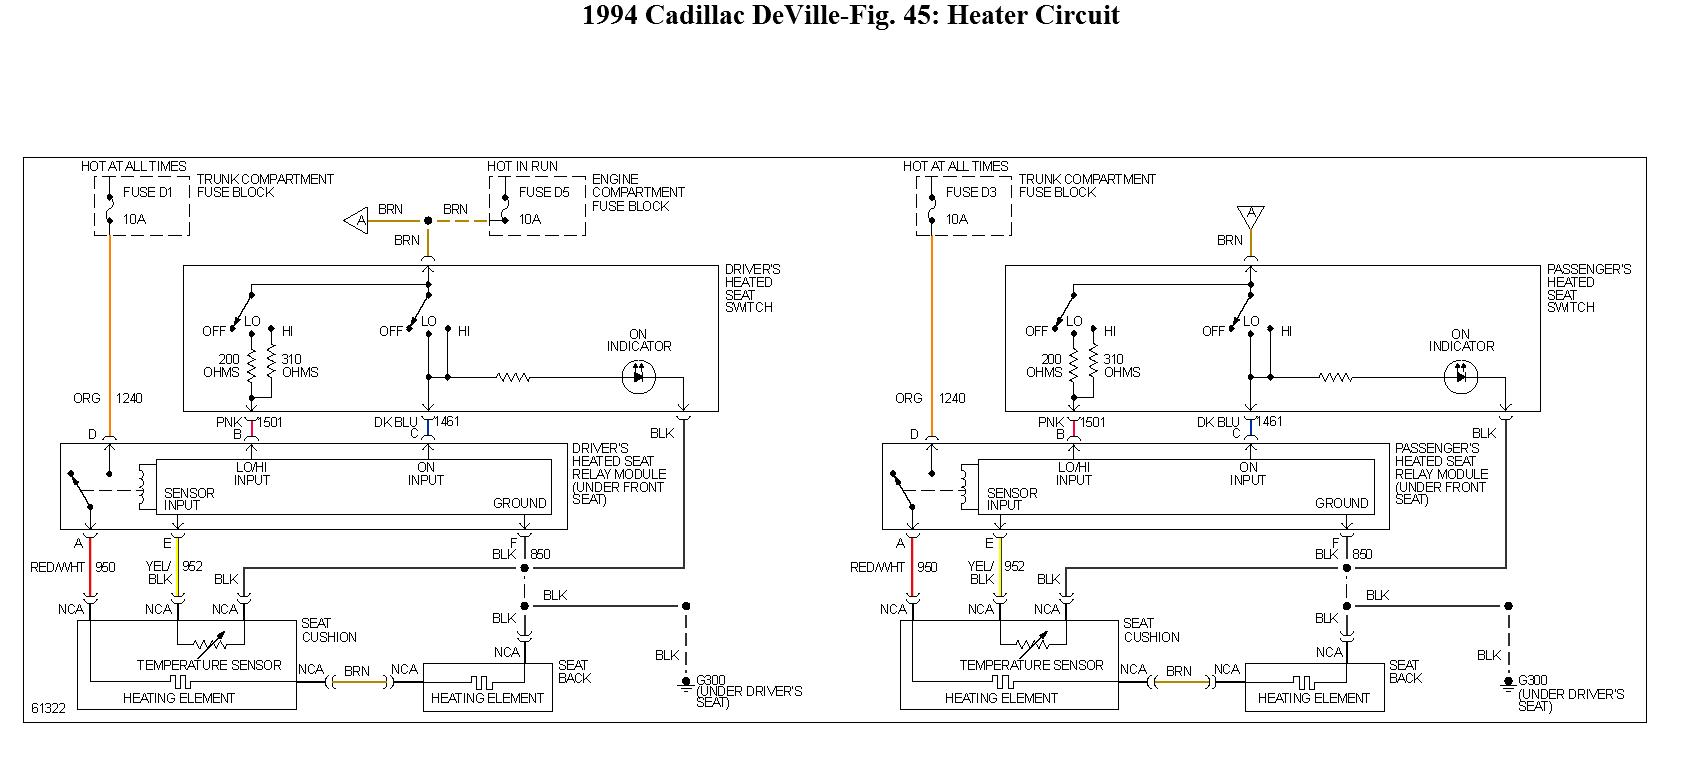 1994 Cadillac Deville Fuse Box Location Wiring Library Lesabre Horn Diagram Question 5 60 Amp Maxifuse Controls